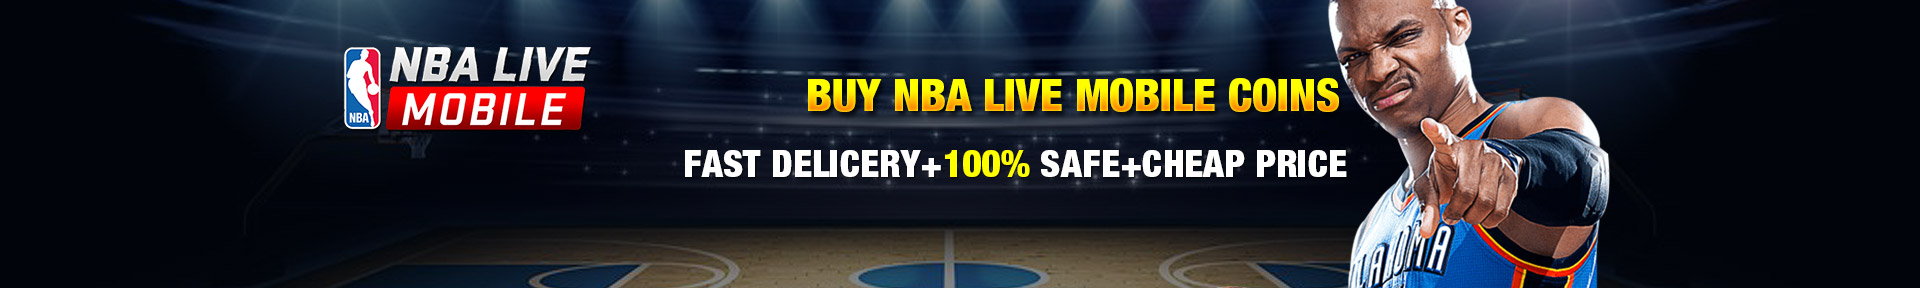 NBA Live Mobile Cash